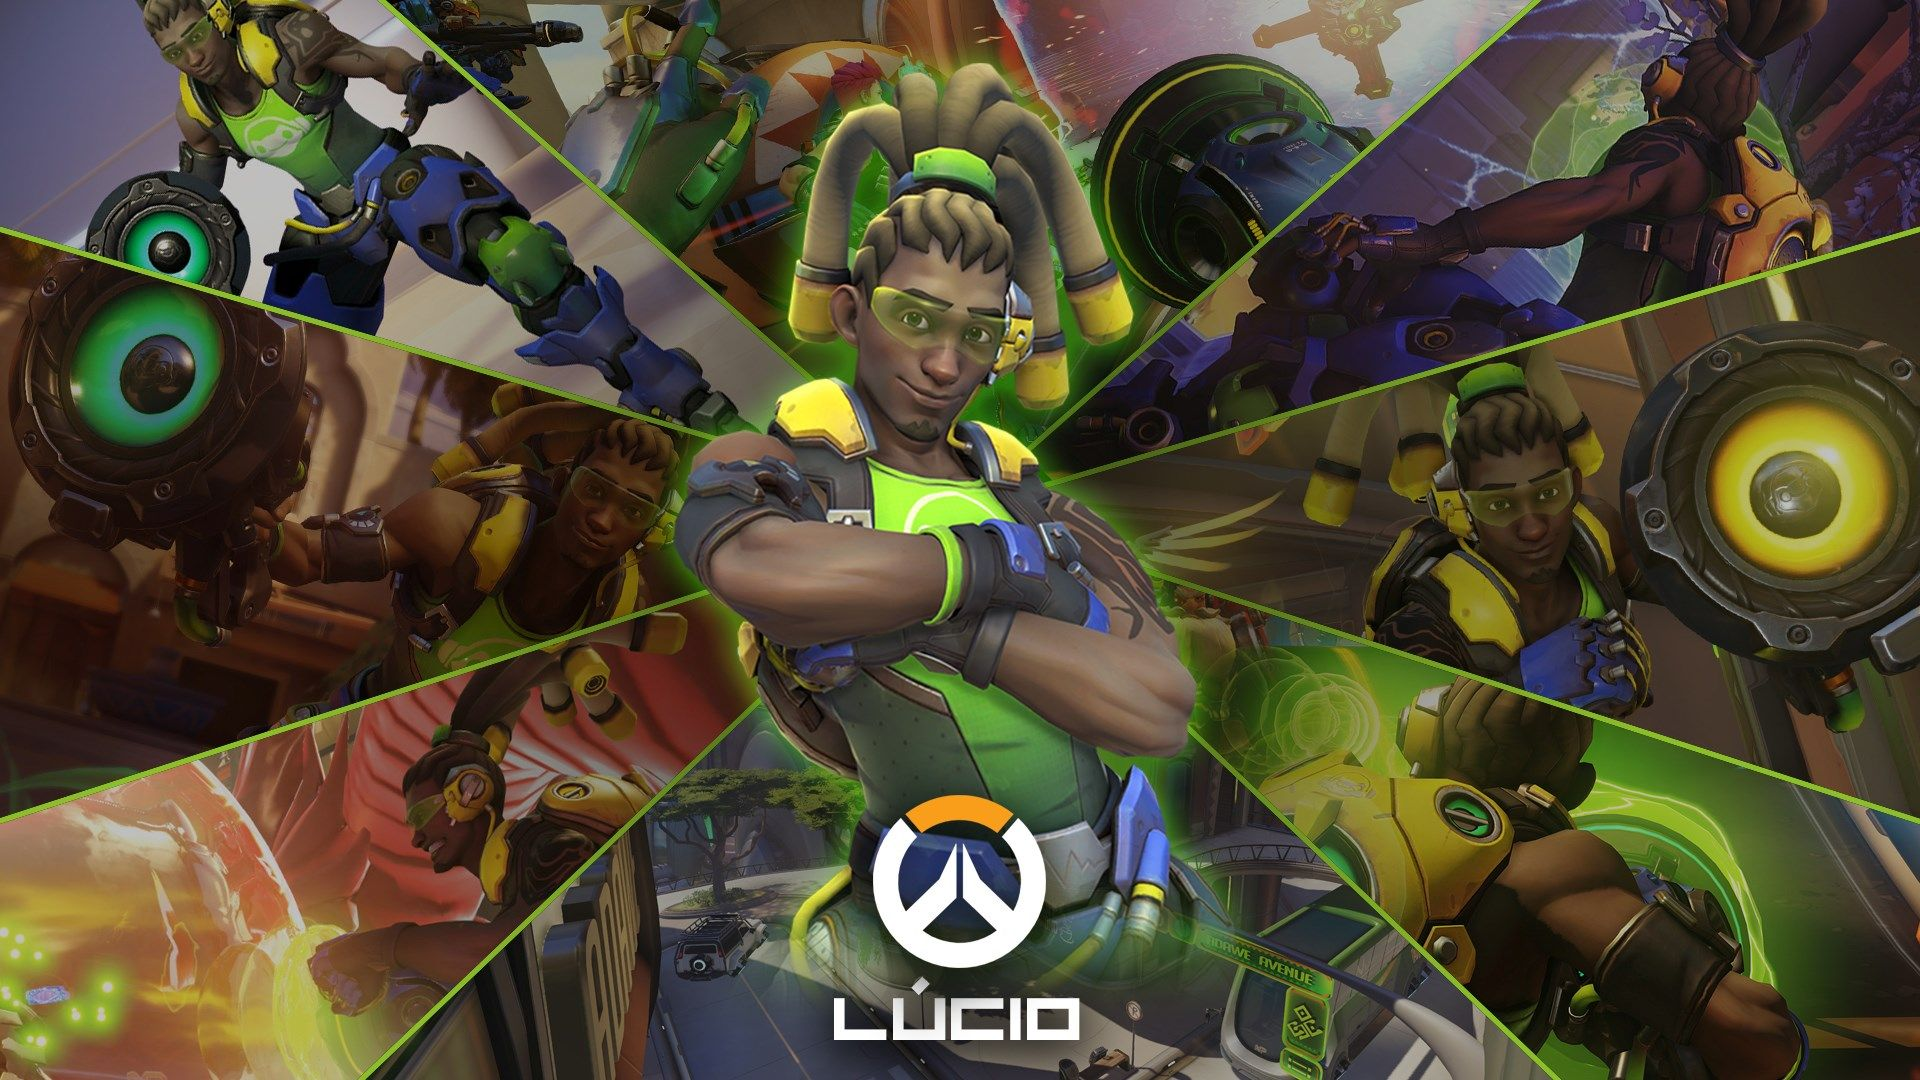 1920x1080 Px High Resolution Wallpapers Overwatch Pic By Osborn Bush